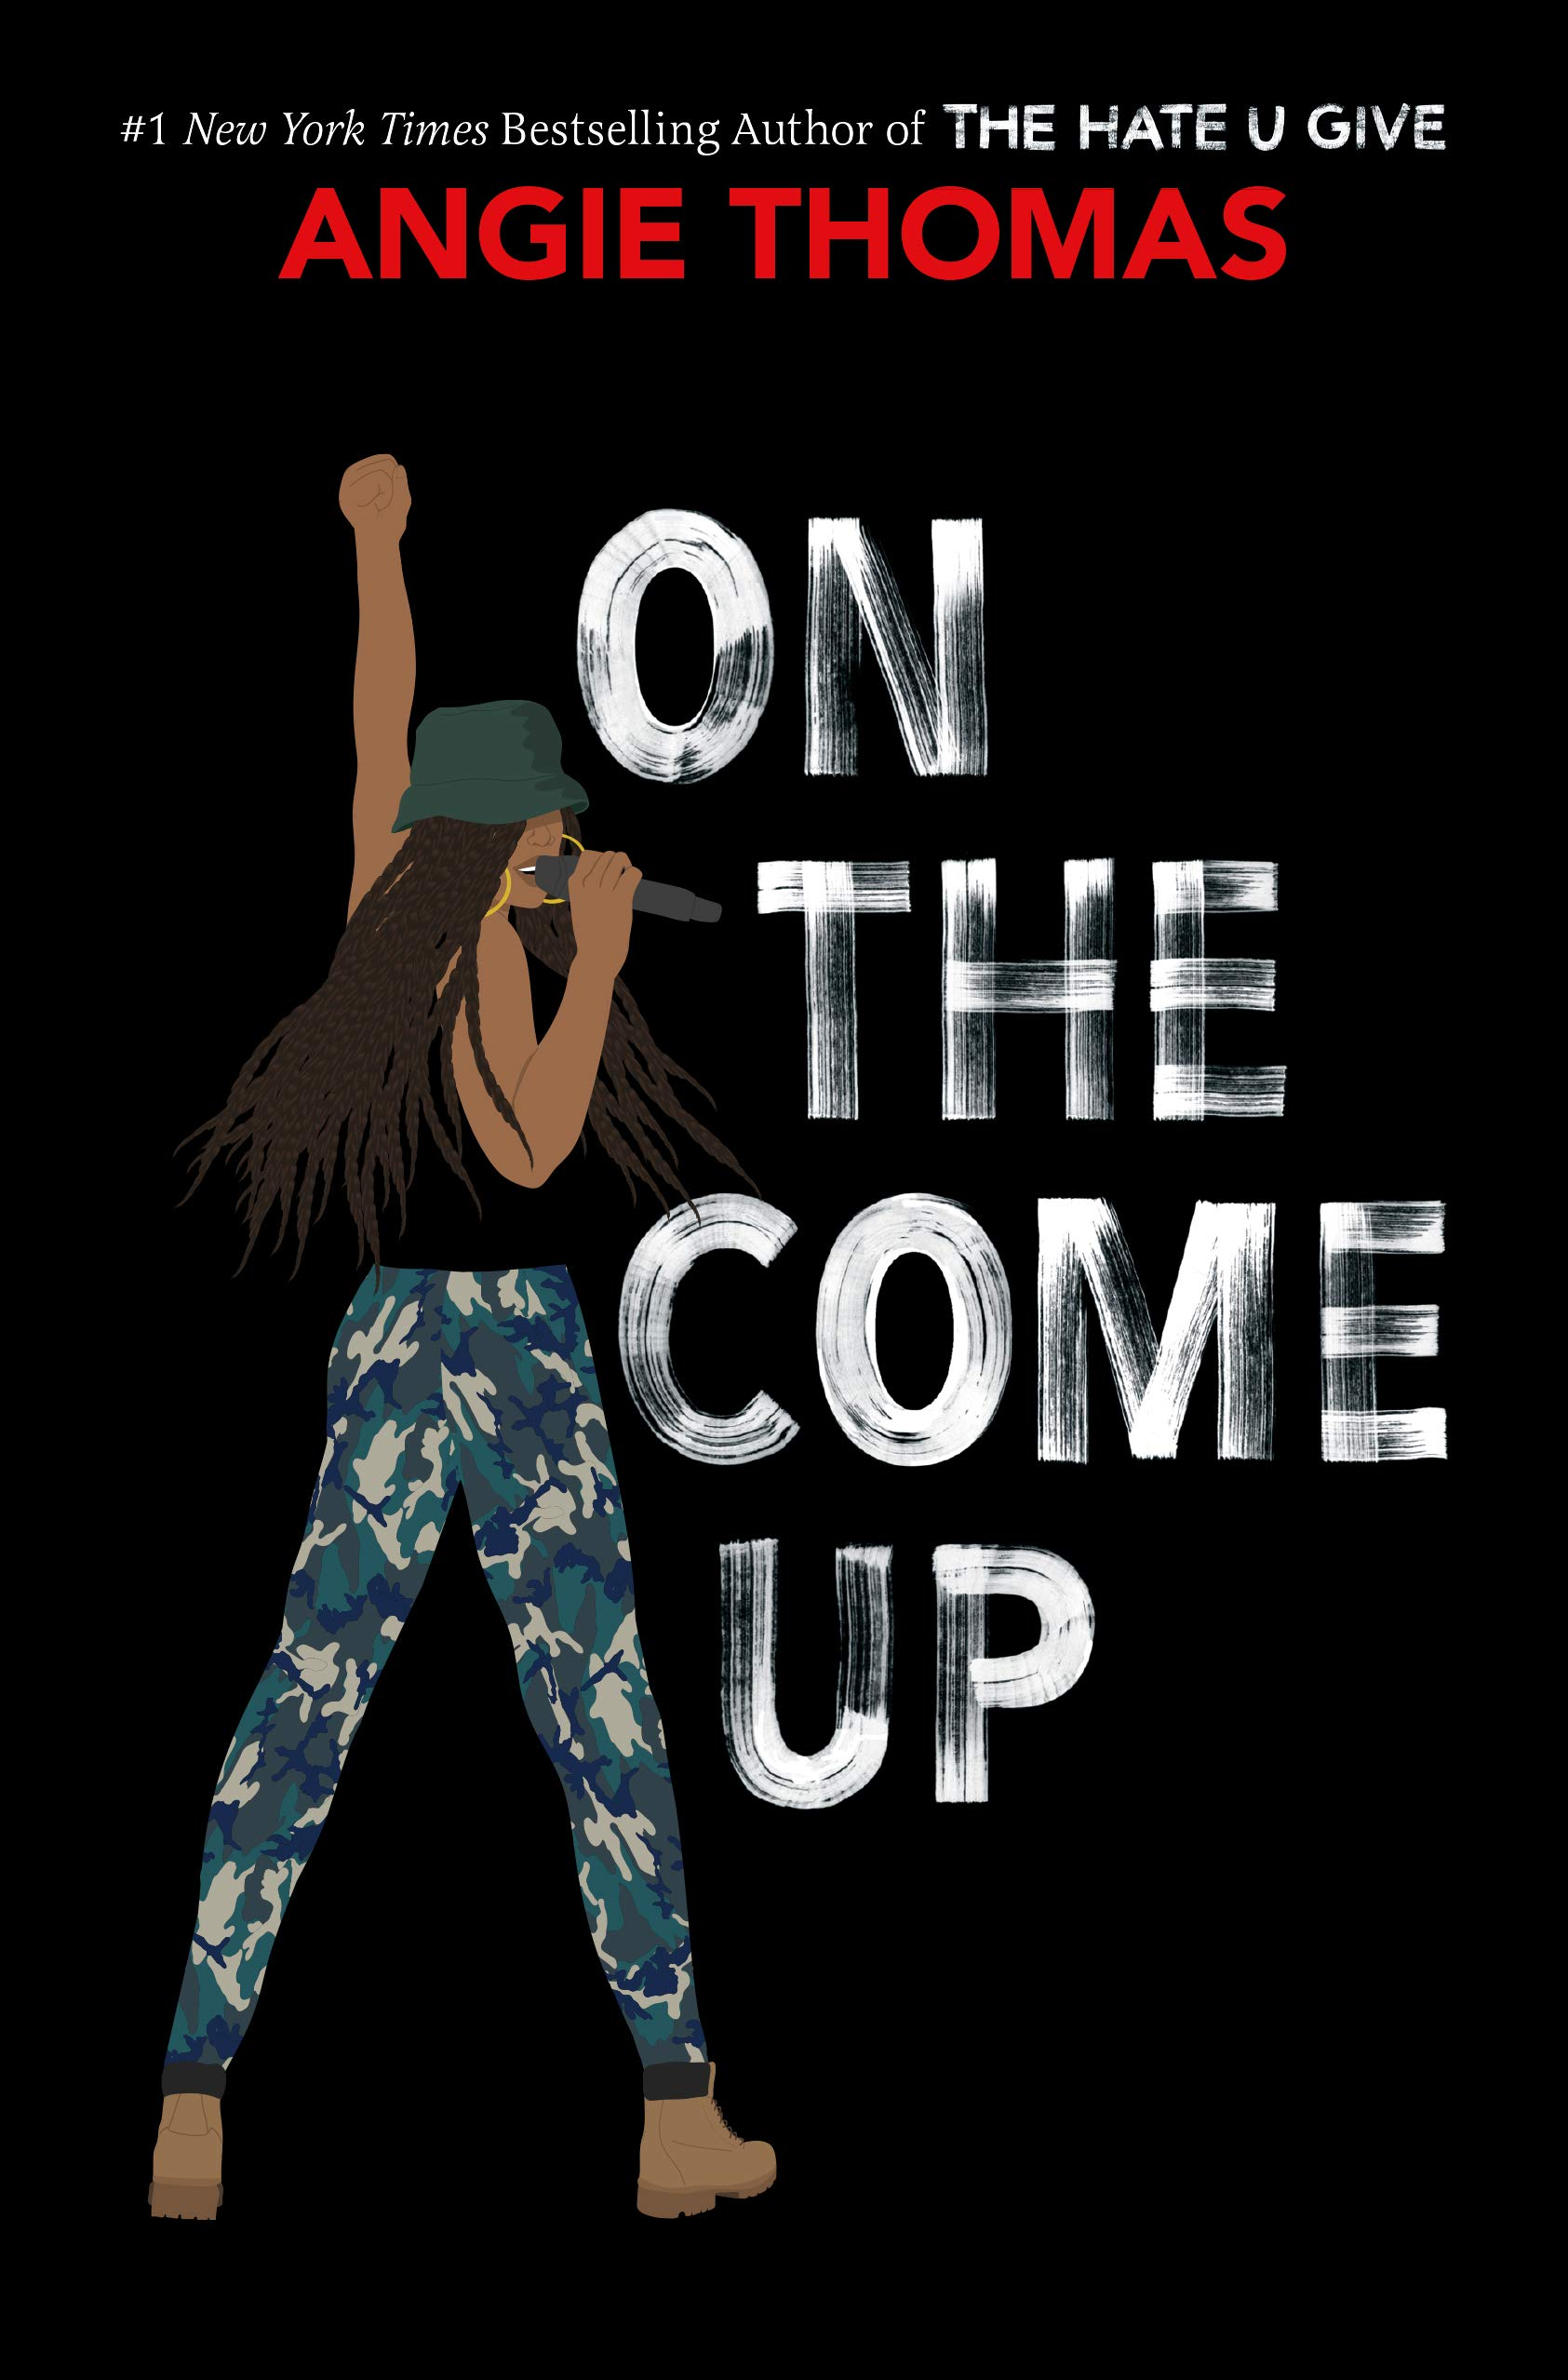 """Written by Angie ThomasIn this new work from the author of The Hate U Give, the daughter of an underground hip-hop legend records the song """"On the Come Up"""" to protest racial profiling, but some see it as inciting violence. """"I was engrossed from the first chapter,"""" says Katherine, a high-school senior. """"The dialogue is so real, and helps convey a powerful message about prejudice."""""""